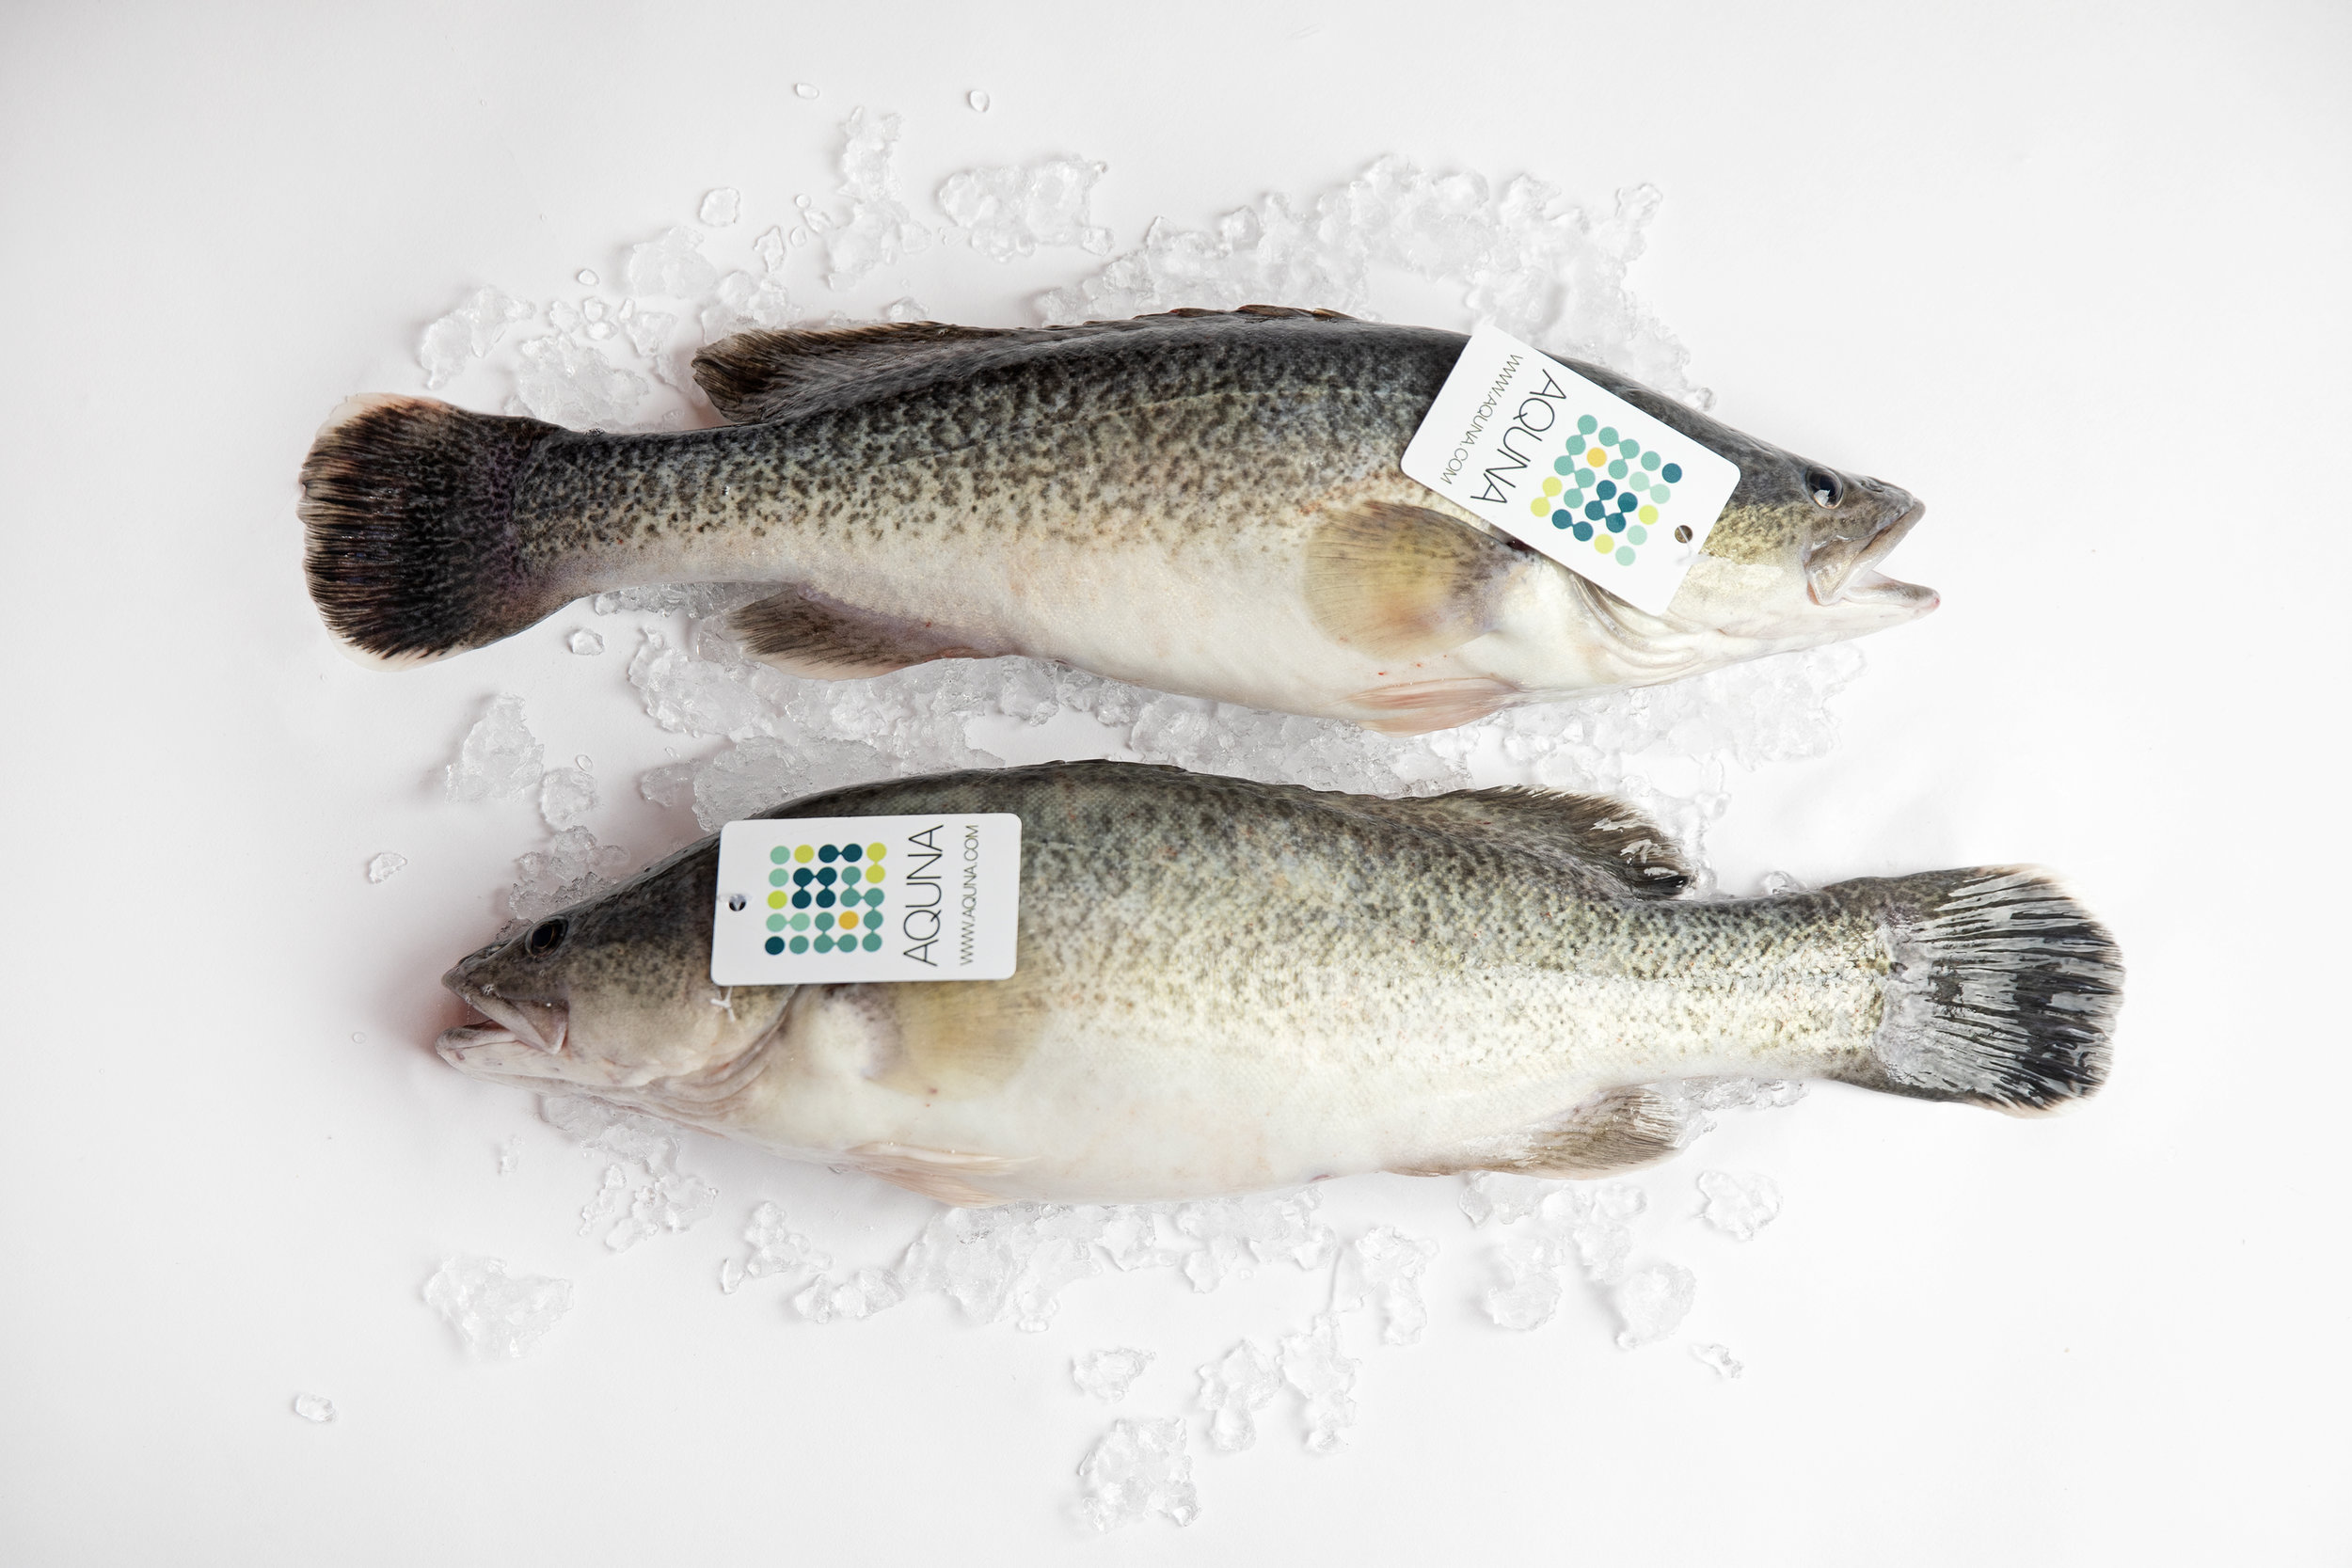 Aquna Murray Cod are pond-raised in off-bottom cages, avoiding any muddiness in the taste.